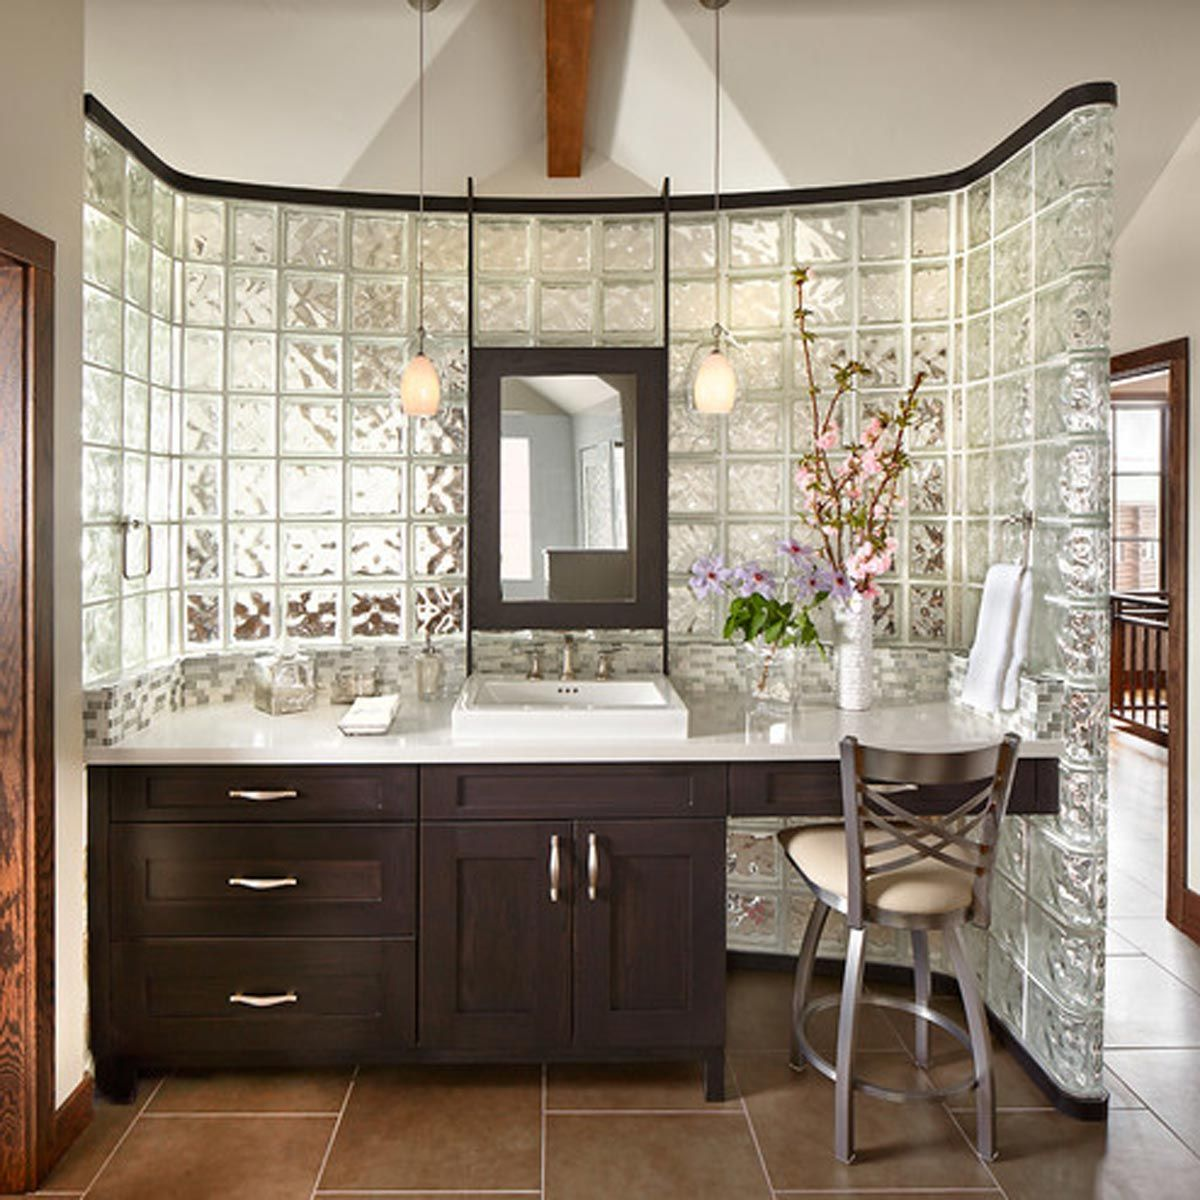 12 Bathroom Trends On The Way Out Bathroom Trends Bathroom Design Trends Traditional Bathroom